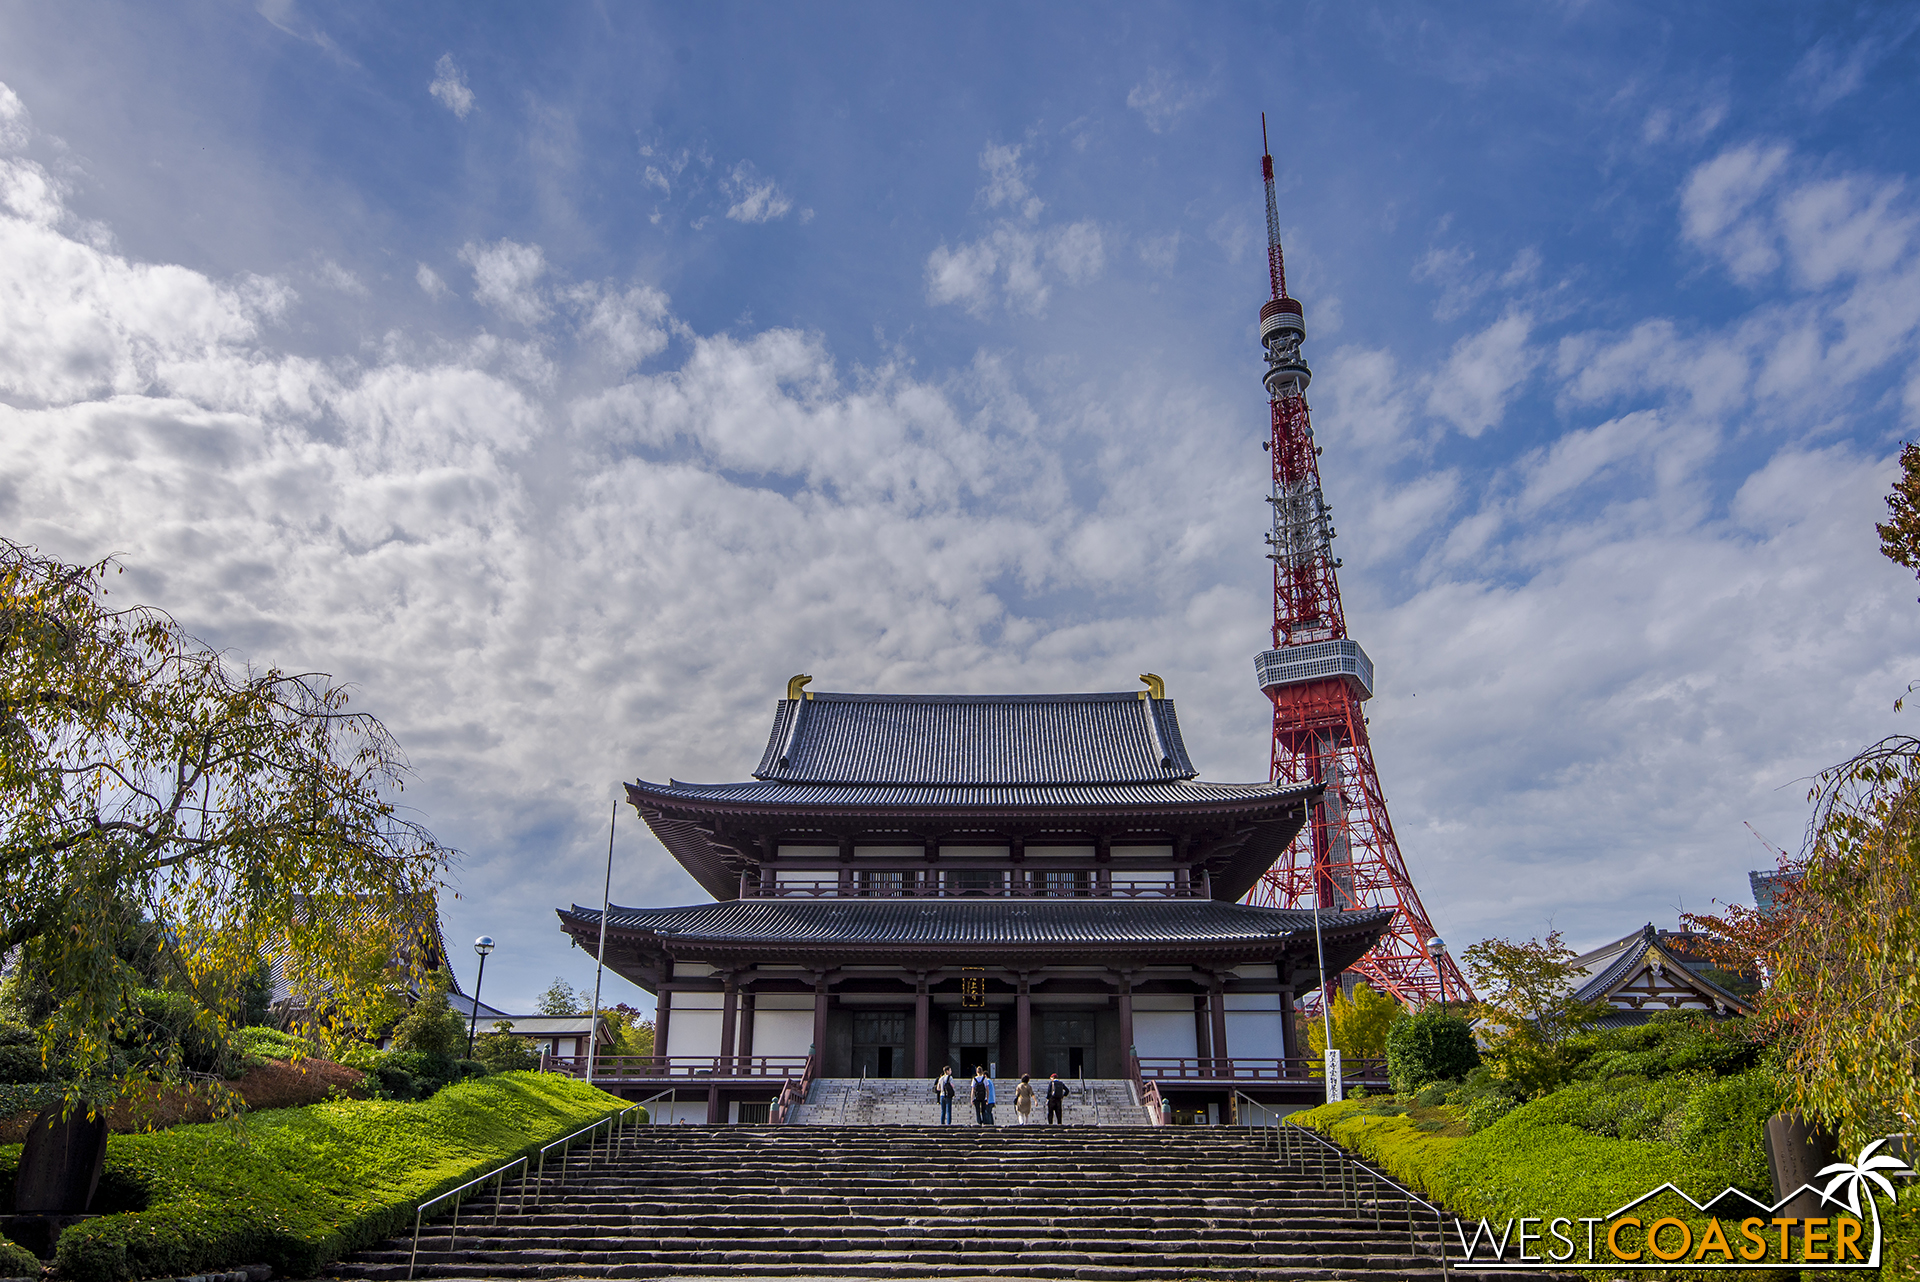 Zojoji Temple and Tokyo Tower provide a wonderful composition during a brief moment of blue skies.